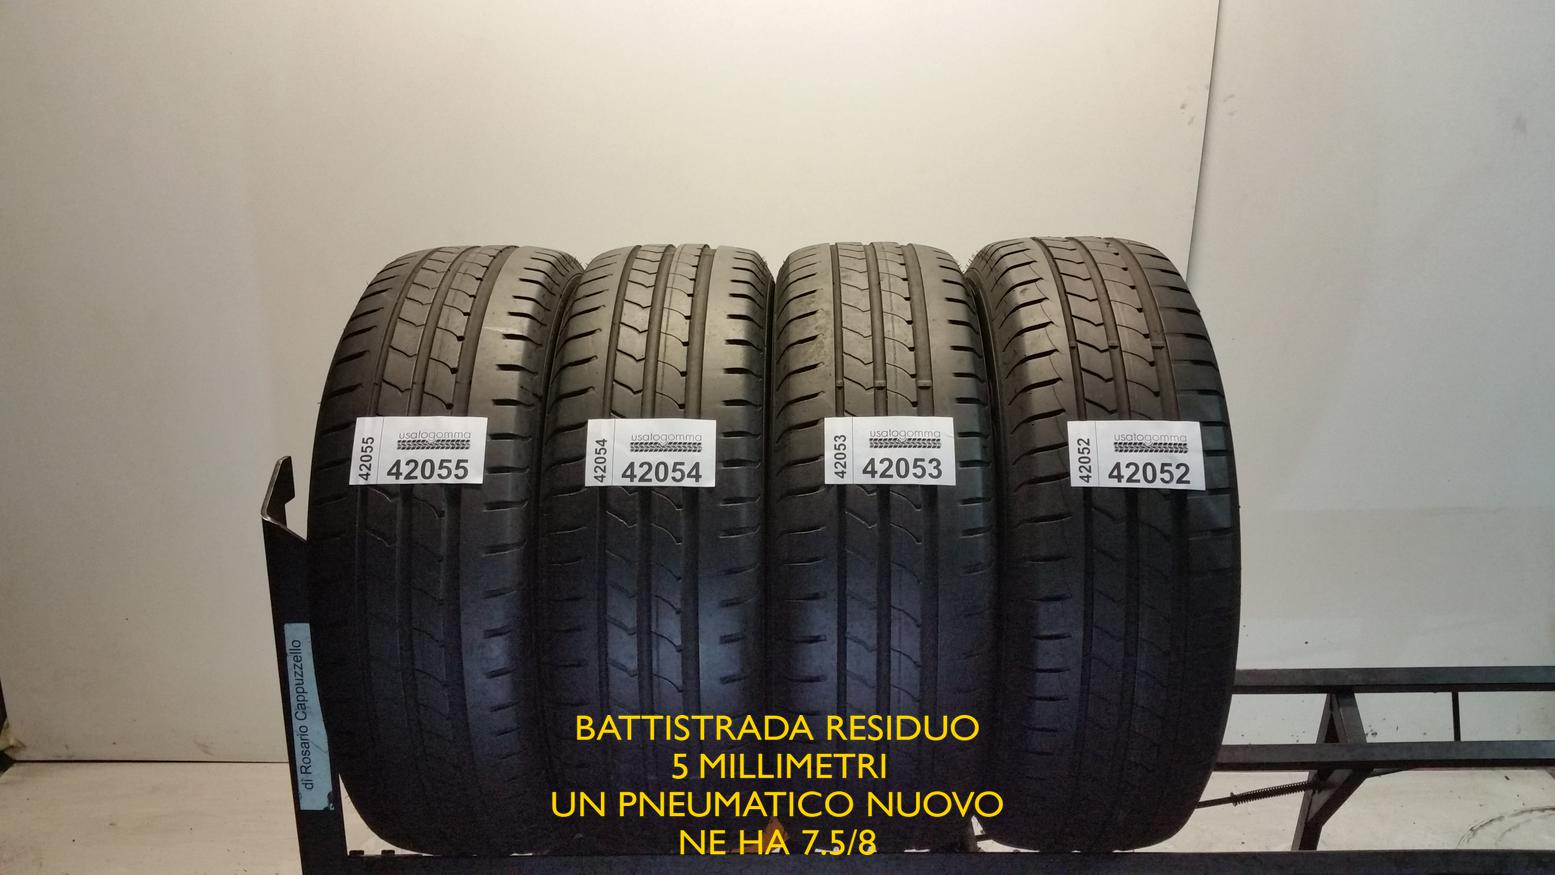 Goodyear 195/60 R16 89 H  usato gomma 11817